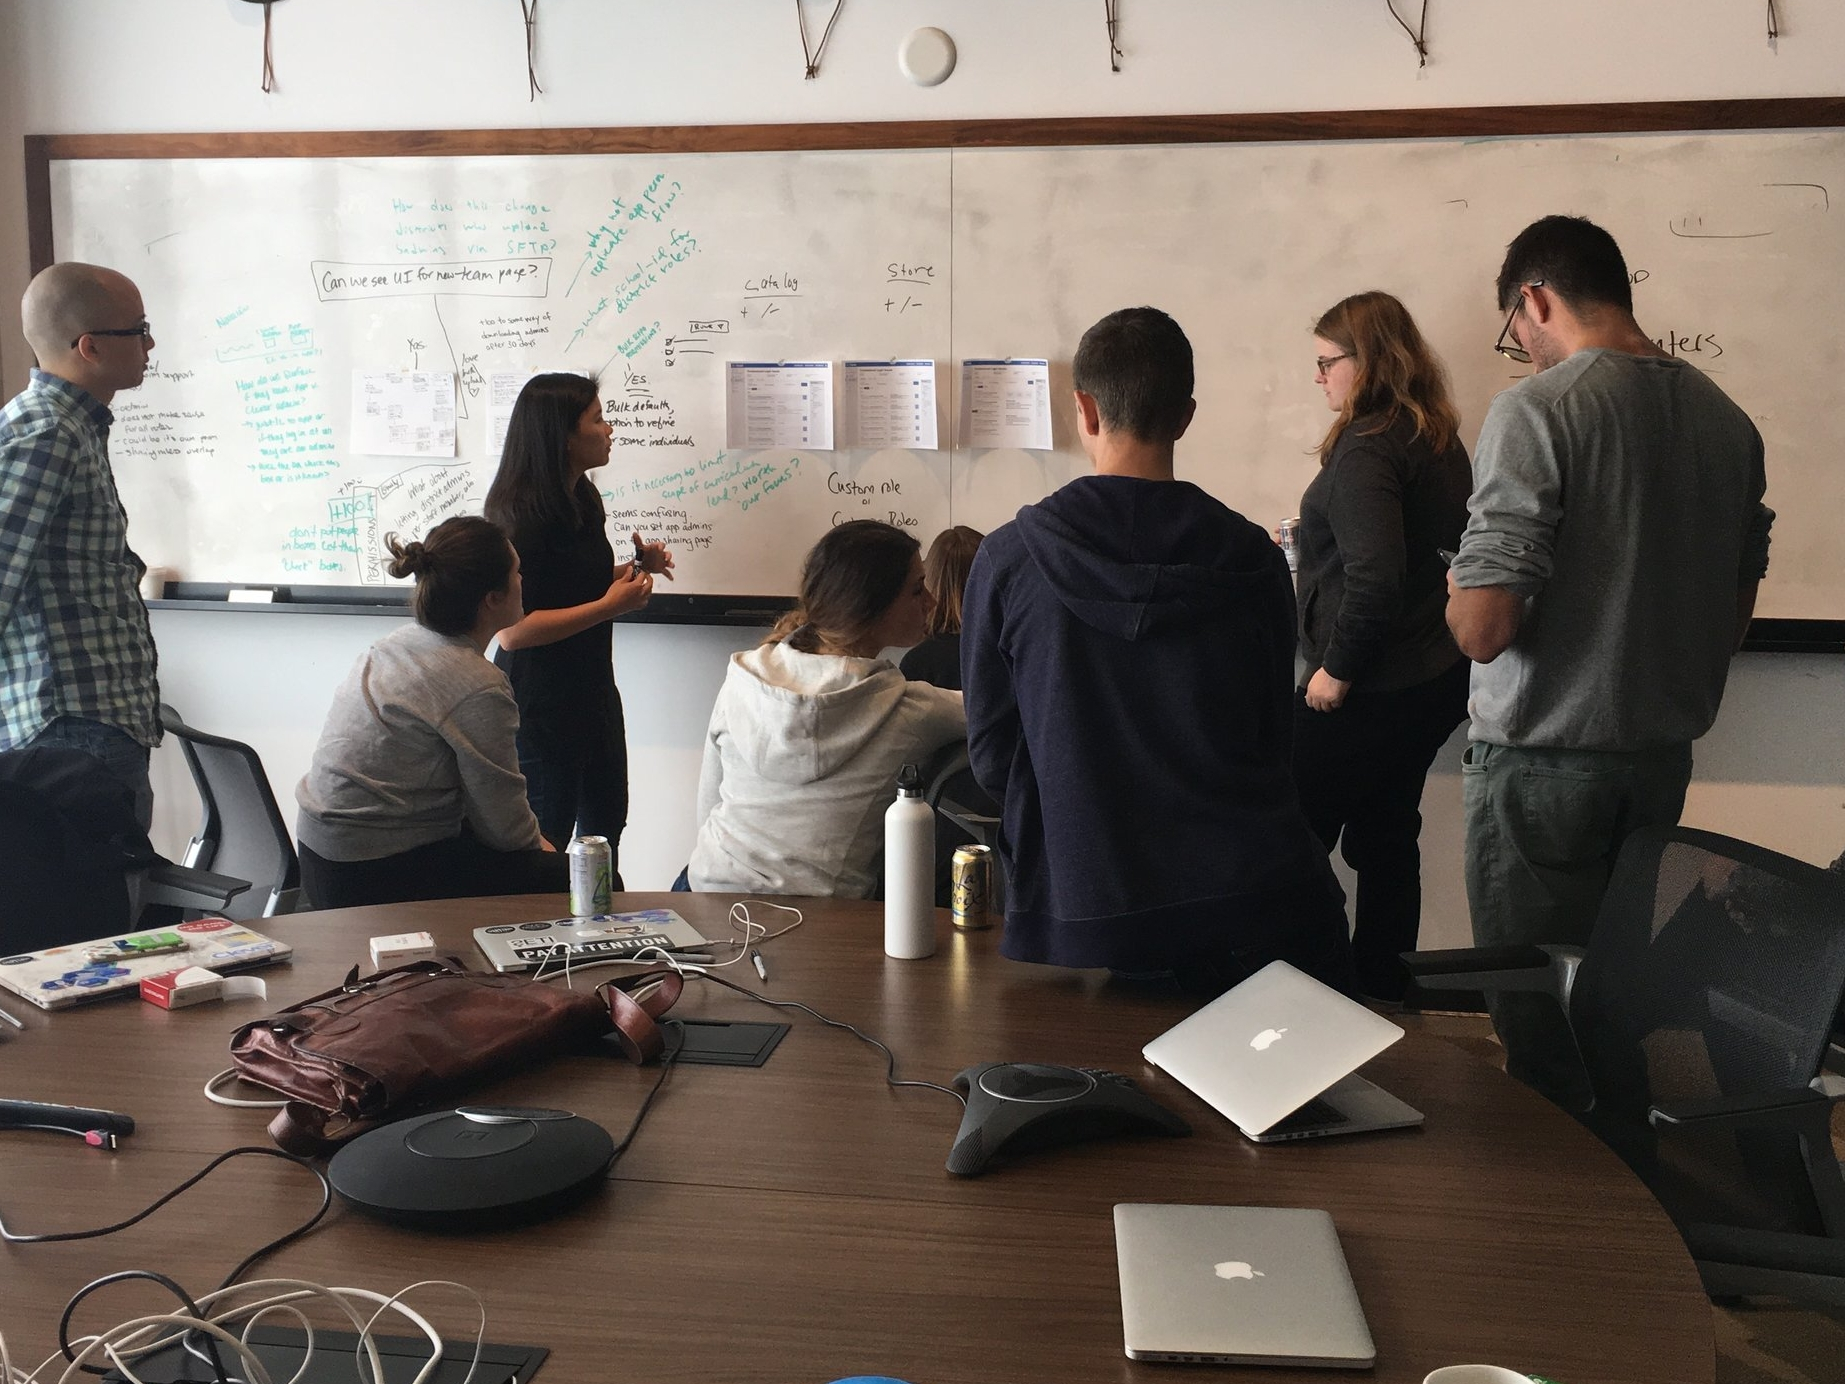 LEADERSHIP - I build inclusive teams that foster excellence in design by coaching and hiring designers to have ownership, autonomy, and trust in their teams.